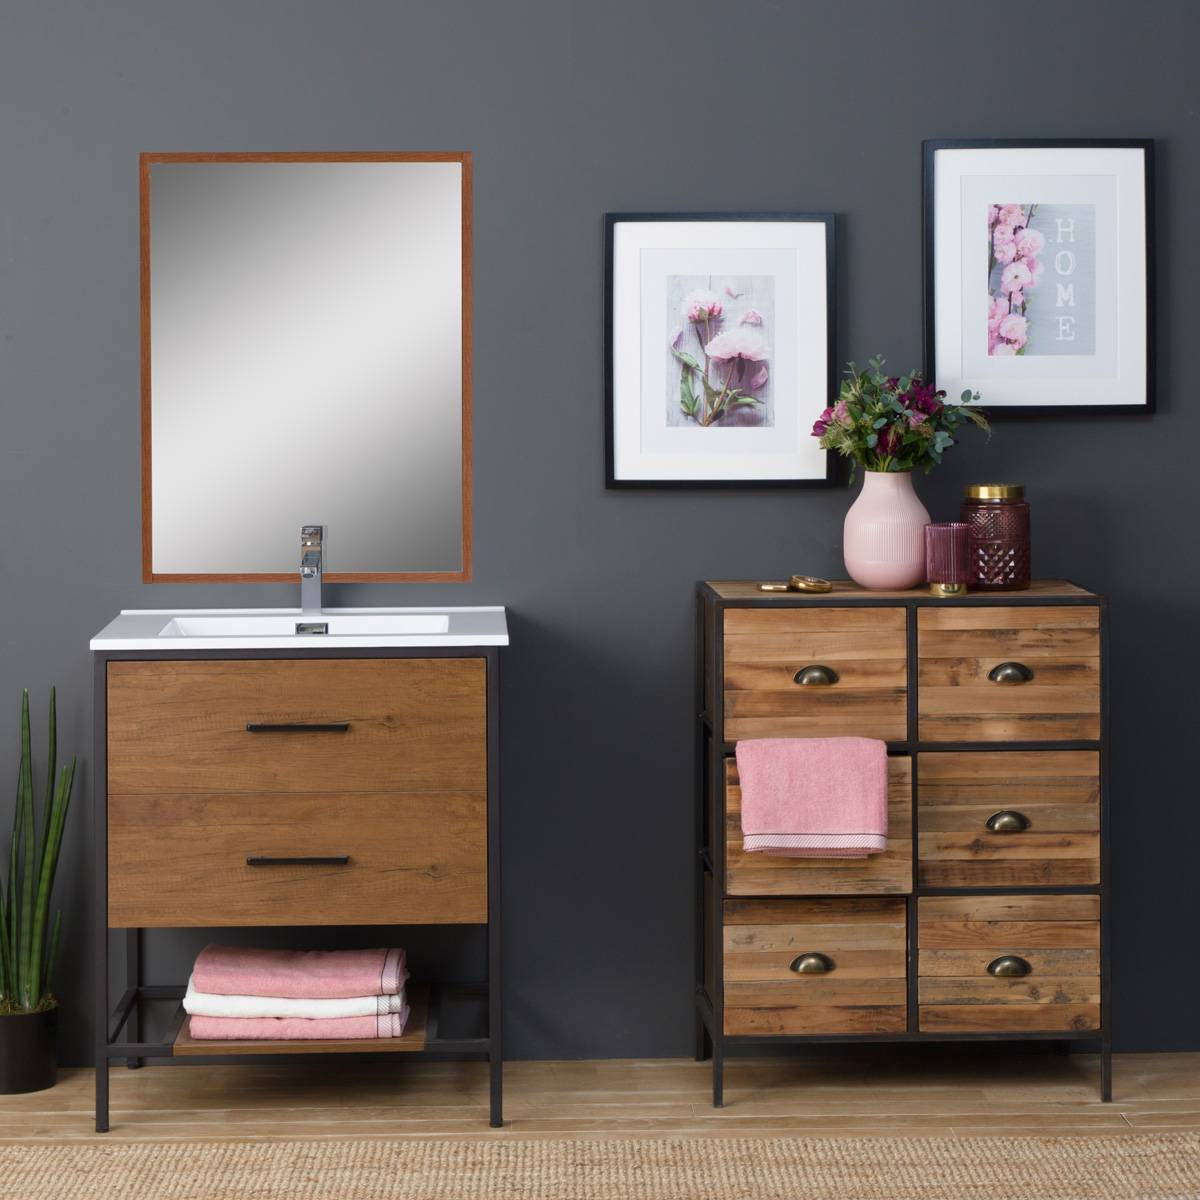 madeinmeubles Commode industrielle 6 tiroirs poignées coquille